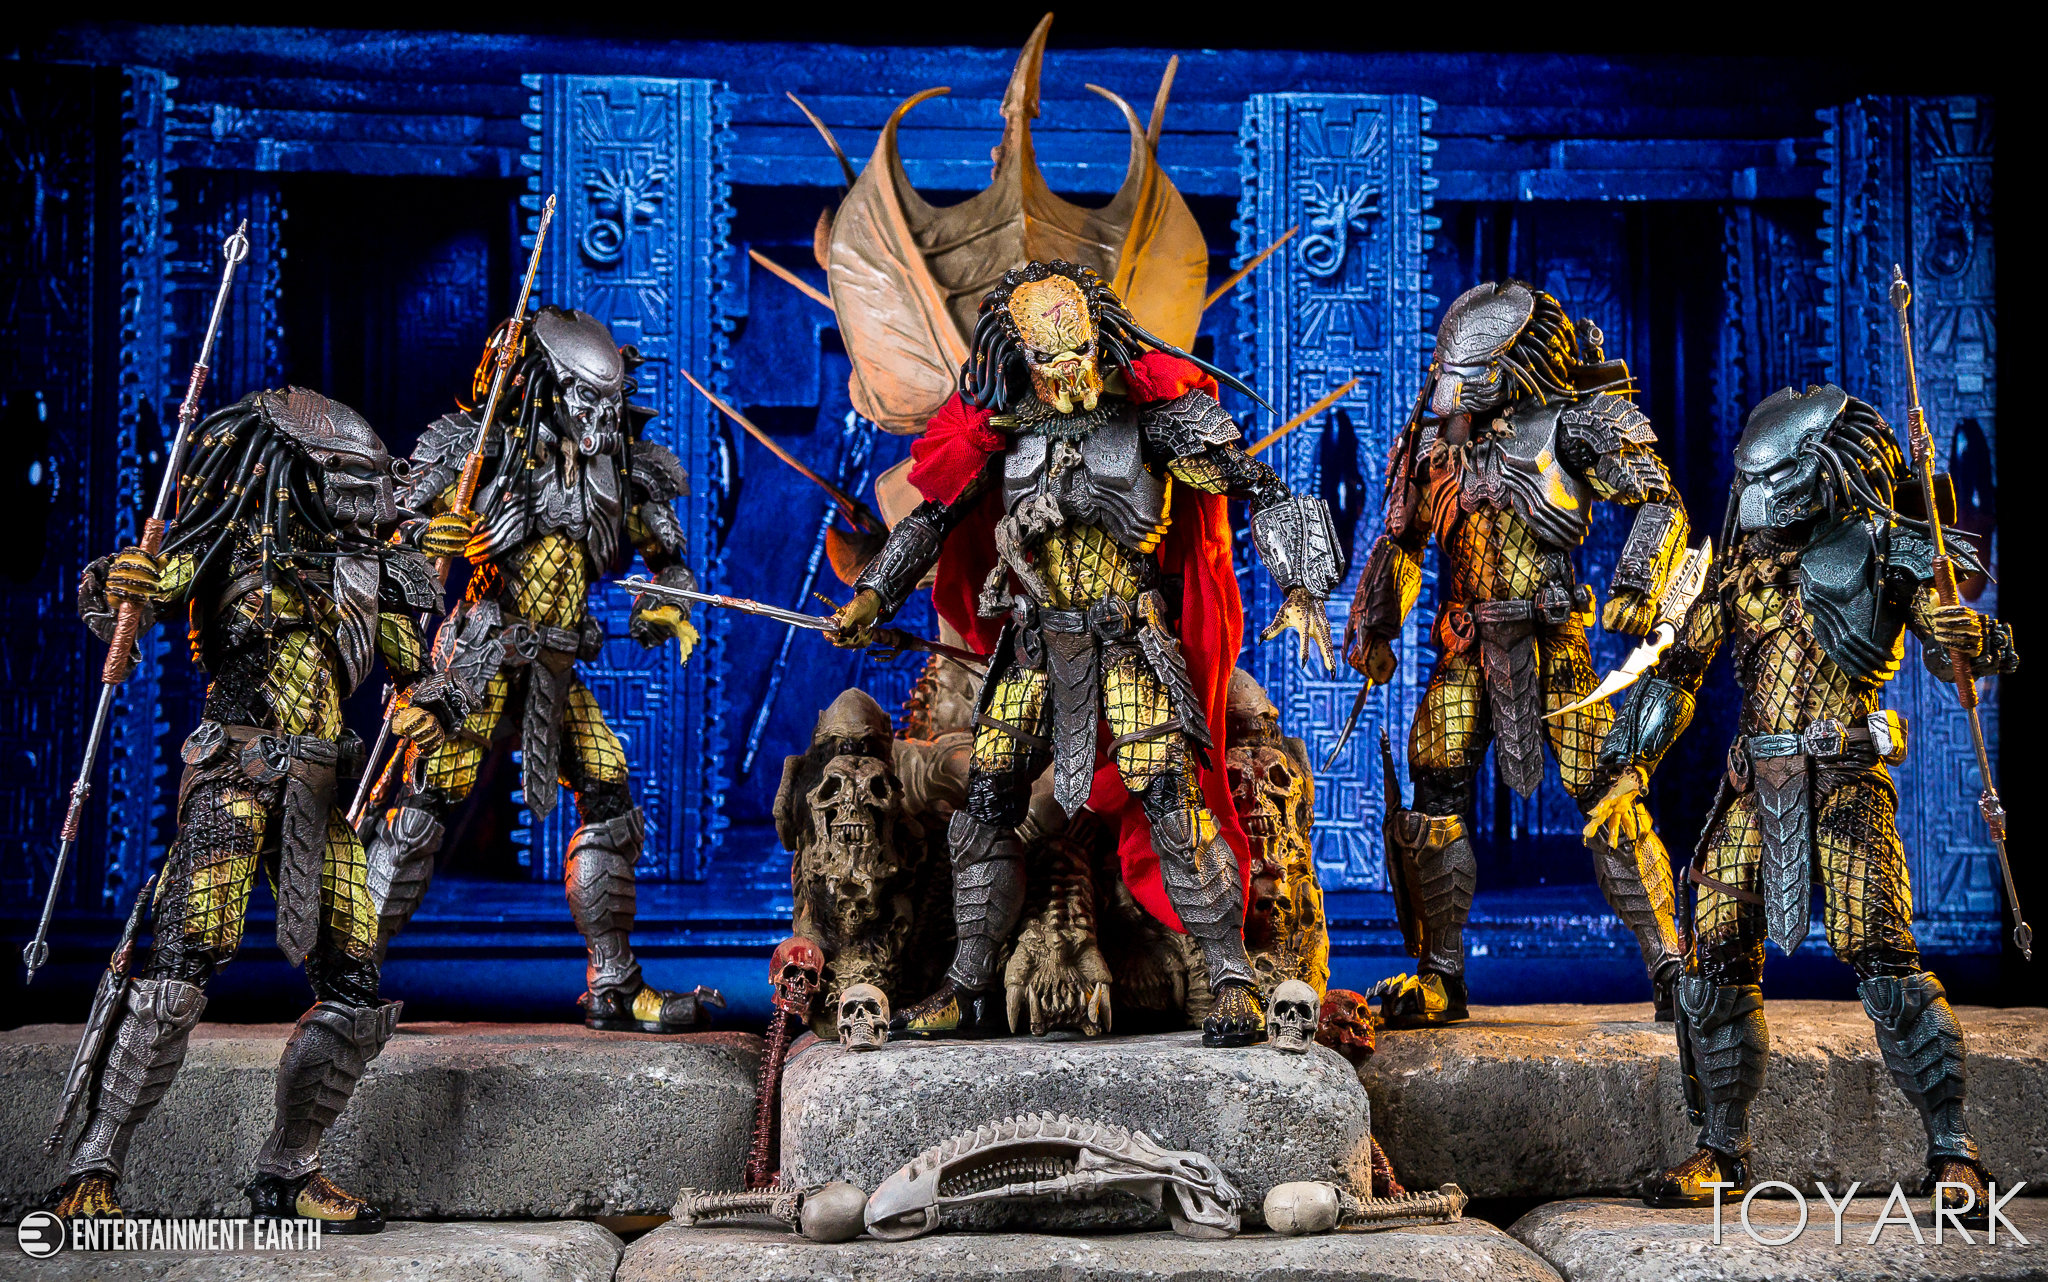 https://news.toyark.com/wp-content/uploads/sites/4/2018/05/NECA-Predator-Throne-040.jpg